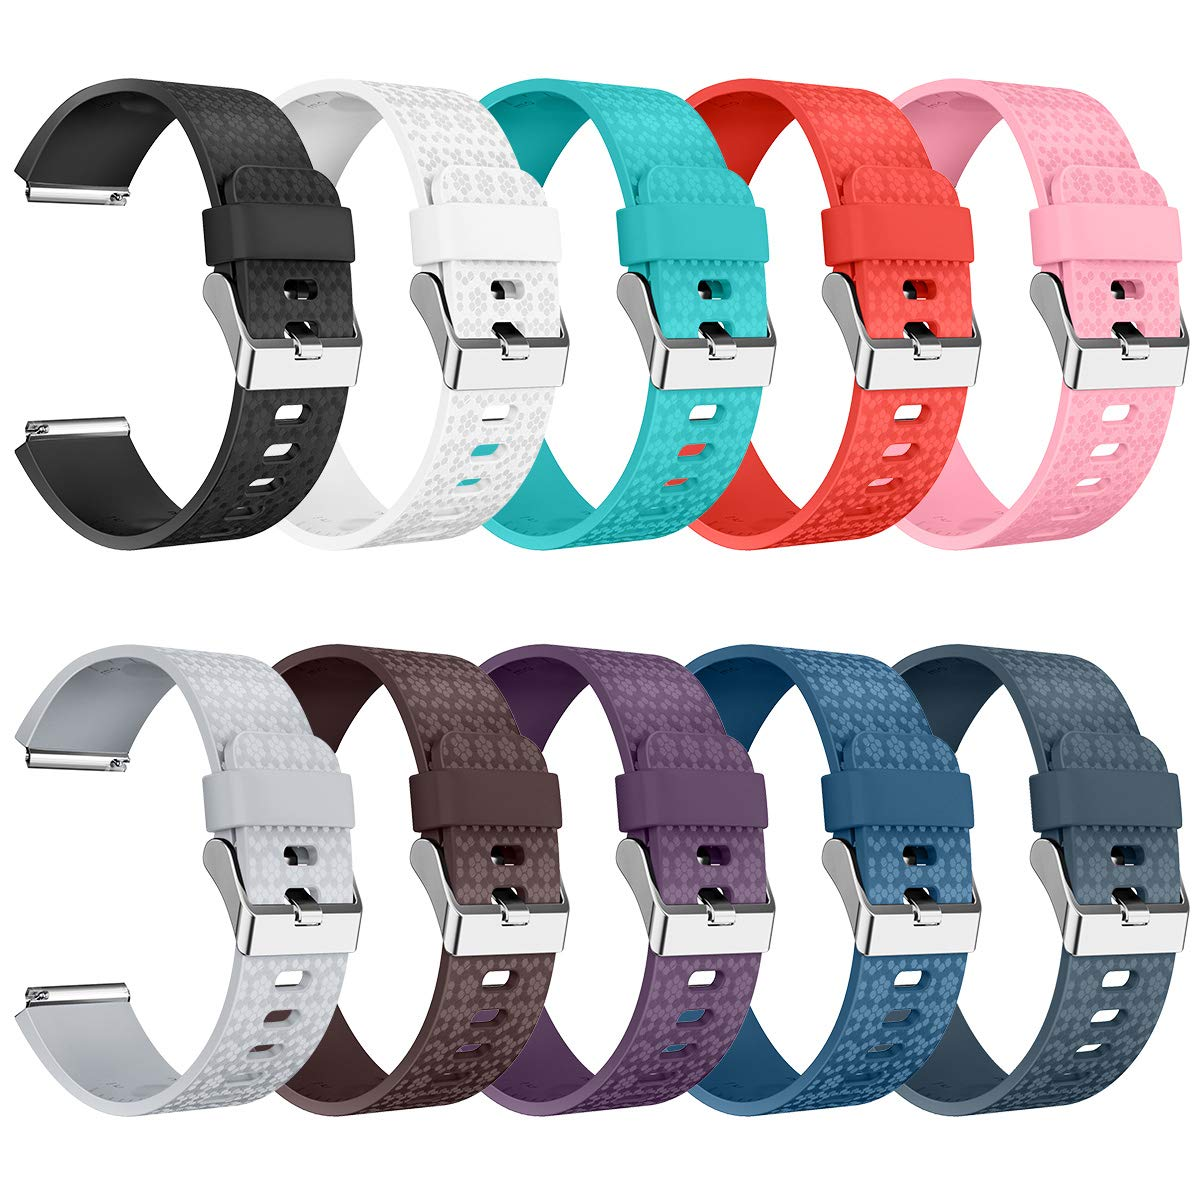 AIUNIT Compatible Fitbit Blaze Bands Small, Replacement for Fitbit Blaze Accessories Wristband Watch Sport Strap for Fitbit Blaze Smart Tracker Women Men Teends Laser Texture 10 Pack No Tracker